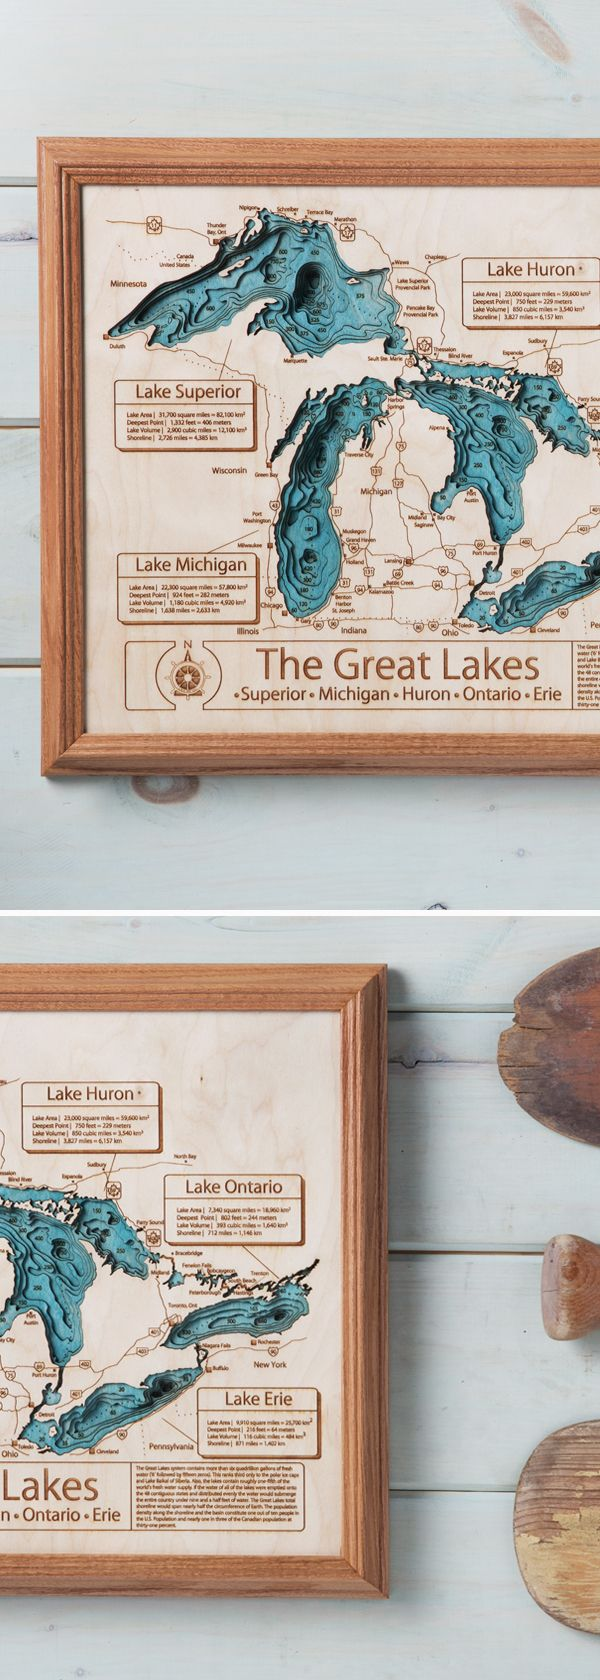 These wooden maps are custom-made for commemorating that special lake in your life.